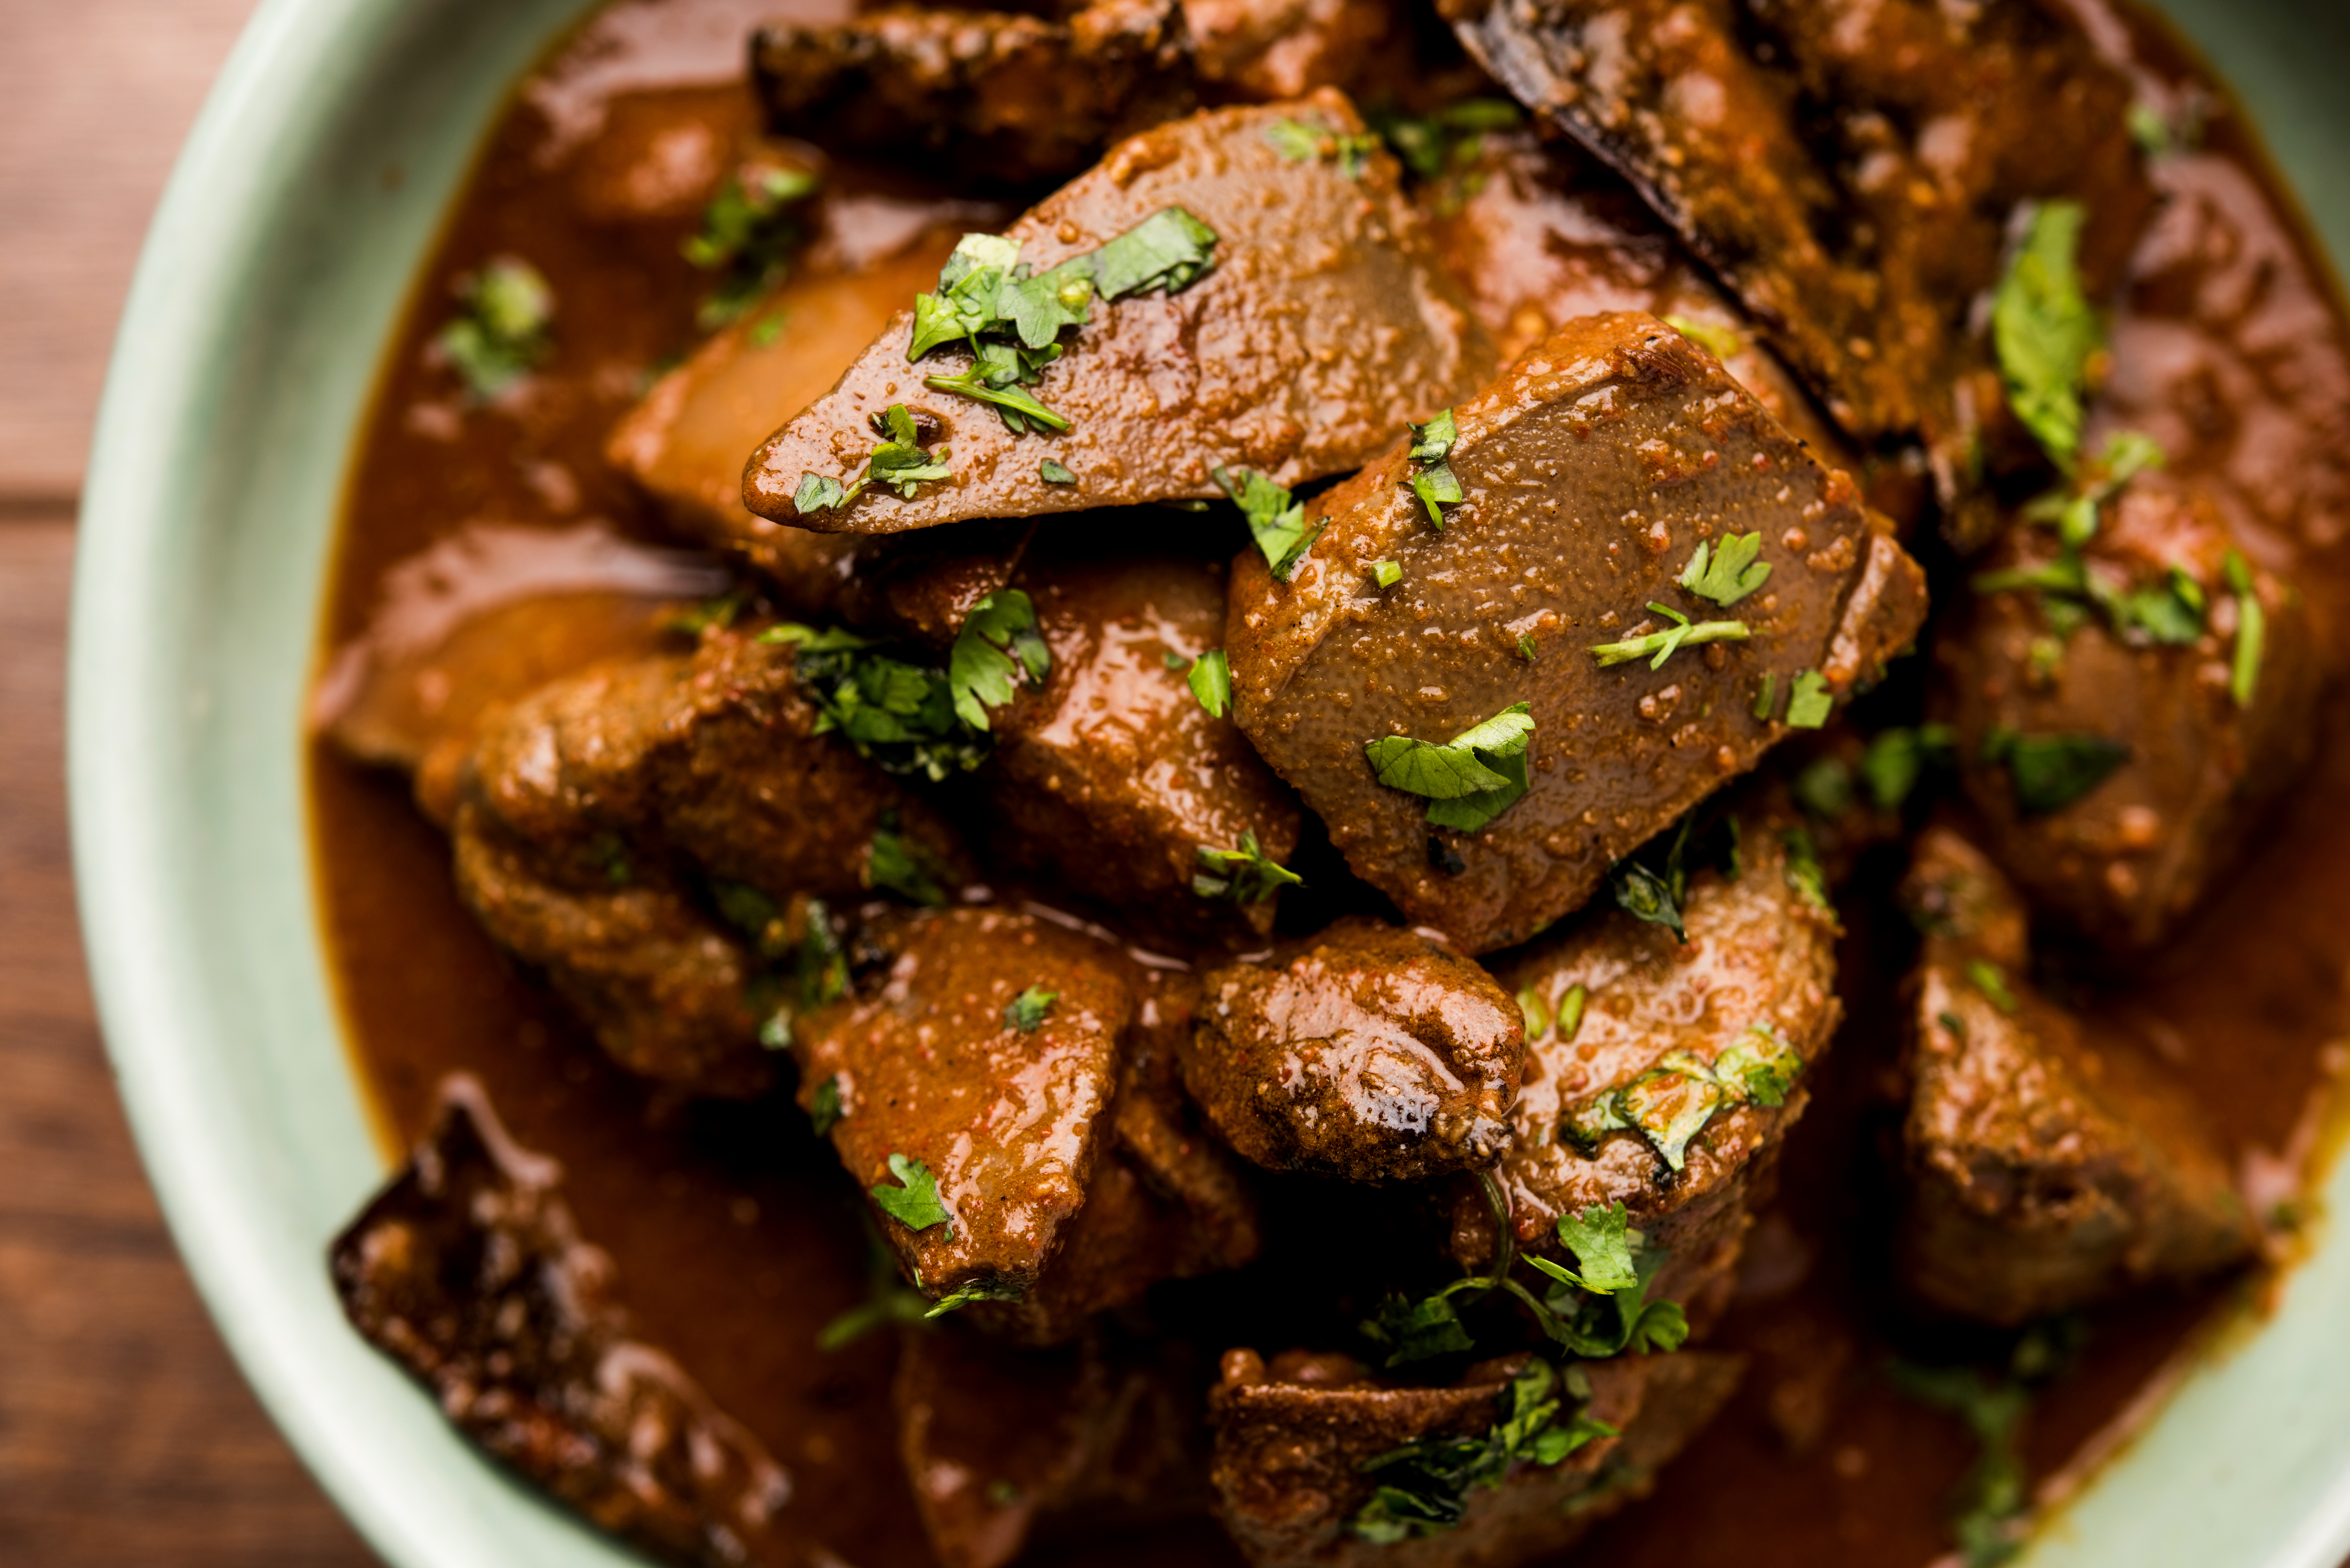 7 offal dishes from across India that champion nose-to-tail cooking